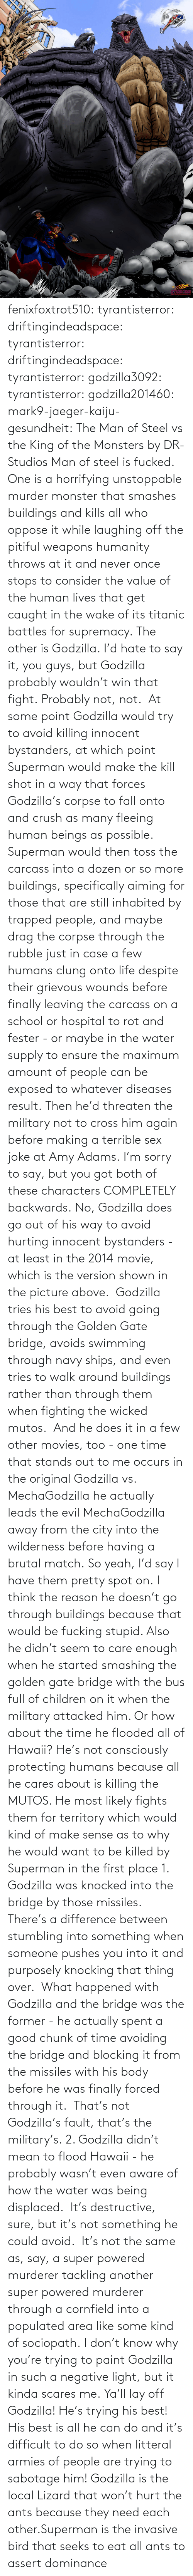 Children, Crush, and Fall: fenixfoxtrot510:  tyrantisterror: driftingindeadspace:  tyrantisterror:  driftingindeadspace:  tyrantisterror:  godzilla3092:  tyrantisterror:  godzilla201460:  mark9-jaeger-kaiju-gesundheit:  The Man of Steel vs the King of the Monsters by DR-Studios  Man of steel is fucked.  One is a horrifying unstoppable murder monster that smashes buildings and kills all who oppose it while laughing off the pitiful weapons humanity throws at it and never once stops to consider the value of the human lives that get caught in the wake of its titanic battles for supremacy. The other is Godzilla.  I'd hate to say it, you guys, but Godzilla probably wouldn't win that fight.  Probably not, not.  At some point Godzilla would try to avoid killing innocent bystanders, at which point Superman would make the kill shot in a way that forces Godzilla's corpse to fall onto and crush as many fleeing human beings as possible.  Superman would then toss the carcass into a dozen or so more buildings, specifically aiming for those that are still inhabited by trapped people, and maybe drag the corpse through the rubble just in case a few humans clung onto life despite their grievous wounds before finally leaving the carcass on a school or hospital to rot and fester - or maybe in the water supply to ensure the maximum amount of people can be exposed to whatever diseases result. Then he'd threaten the military not to cross him again before making a terrible sex joke at Amy Adams.  I'm sorry to say, but you got both of these characters COMPLETELY backwards.  No, Godzilla does go out of his way to avoid hurting innocent bystanders - at least in the 2014 movie, which is the version shown in the picture above.  Godzilla tries his best to avoid going through the Golden Gate bridge, avoids swimming through navy ships, and even tries to walk around buildings rather than through them when fighting the wicked mutos.  And he does it in a few other movies, too - one time that stands out to me occurs in the original Godzilla vs. MechaGodzilla he actually leads the evil MechaGodzilla away from the city into the wilderness before having a brutal match. So yeah, I'd say I have them pretty spot on.  I think the reason he doesn't go through buildings because that would be fucking stupid. Also he didn't seem to care enough when he started smashing the golden gate bridge with the bus full of children on it when the military attacked him. Or how about the time he flooded all of Hawaii? He's not consciously protecting humans because all he cares about is killing the MUTOS. He most likely fights them for territory which would kind of make sense as to why he would want to be killed by Superman in the first place  1. Godzilla was knocked into the bridge by those missiles.  There's a difference between stumbling into something when someone pushes you into it and purposely knocking that thing over.  What happened with Godzilla and the bridge was the former - he actually spent a good chunk of time avoiding the bridge and blocking it from the missiles with his body before he was finally forced through it.  That's not Godzilla's fault, that's the military's. 2. Godzilla didn't mean to flood Hawaii - he probably wasn't even aware of how the water was being displaced.  It's destructive, sure, but it's not something he could avoid.  It's not the same as, say, a super powered murderer tackling another super powered murderer through a cornfield into a populated area like some kind of sociopath. I don't know why you're trying to paint Godzilla in such a negative light, but it kinda scares me.    Ya'll lay off Godzilla! He's trying his best! His best is all he can do and it's difficult to do so when litteral armies of people are trying to sabotage him!   Godzilla is the local Lizard that won't hurt the ants because they need each other.Superman is the invasive bird that seeks to eat all ants to assert dominance